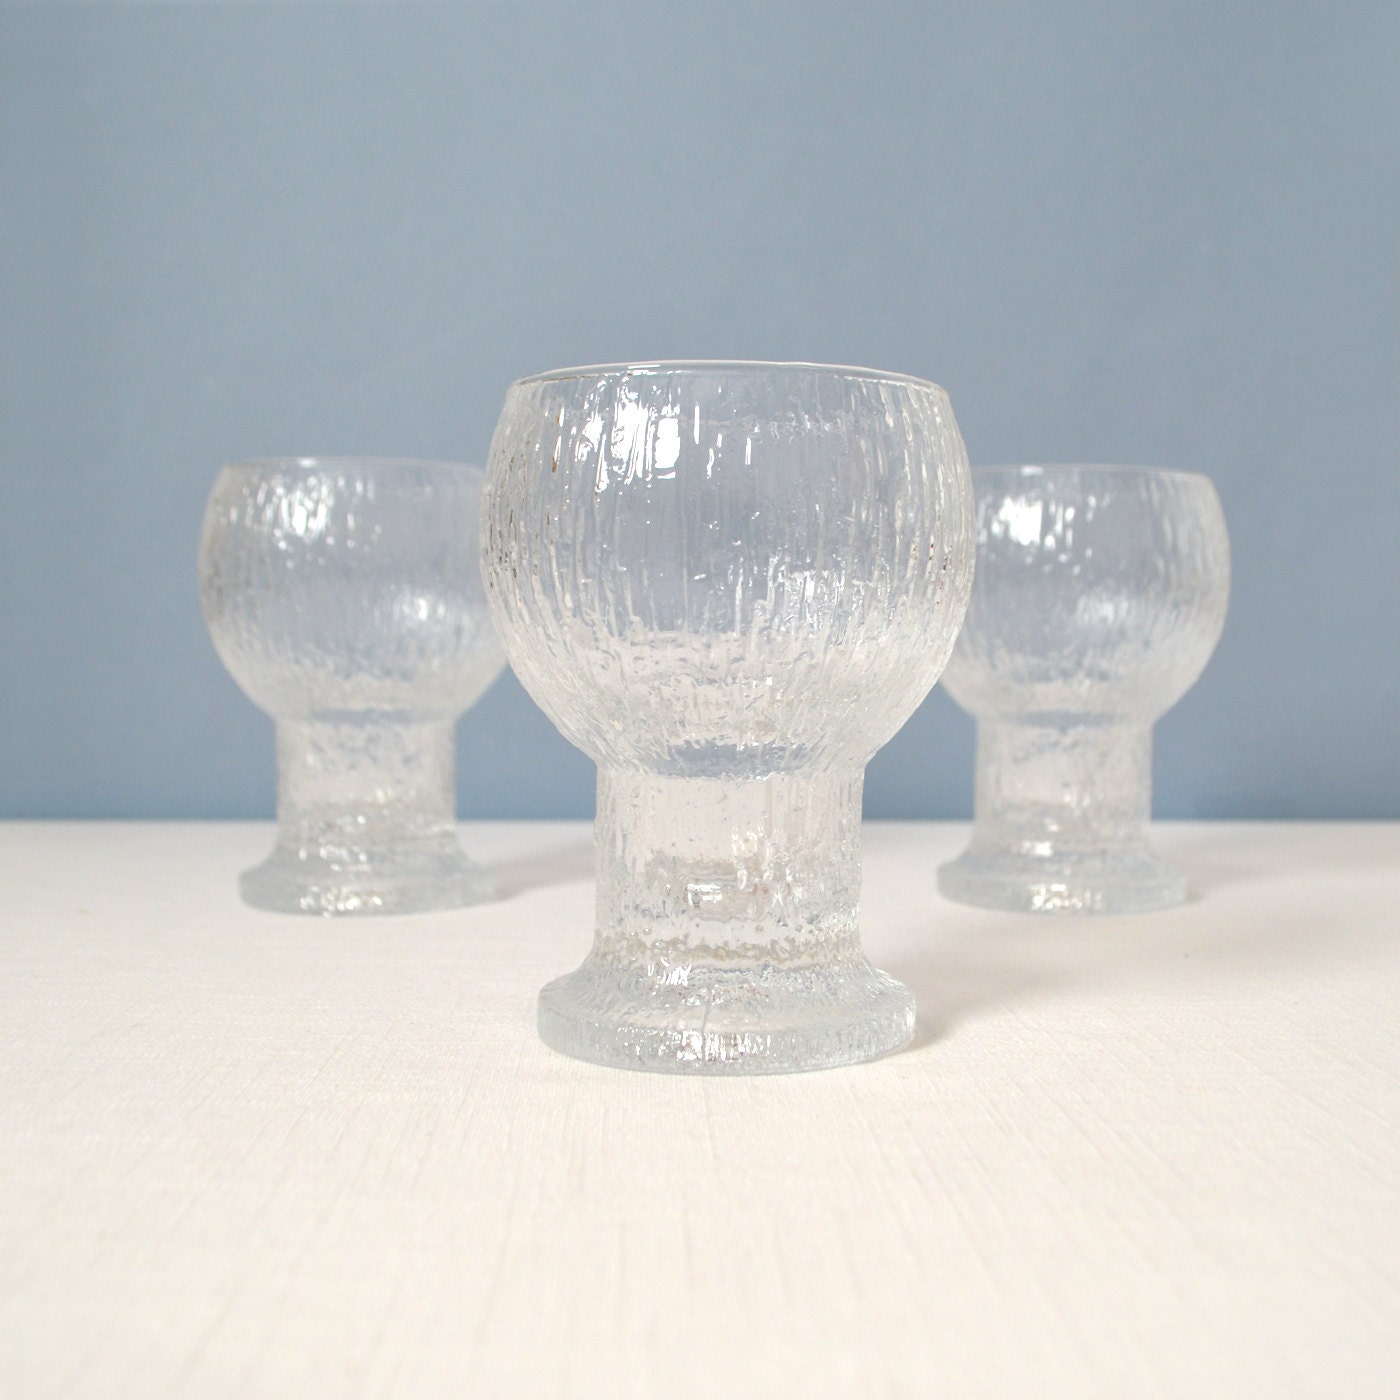 vintage iittala tapio wirkkala kekkerit water goblets. Black Bedroom Furniture Sets. Home Design Ideas